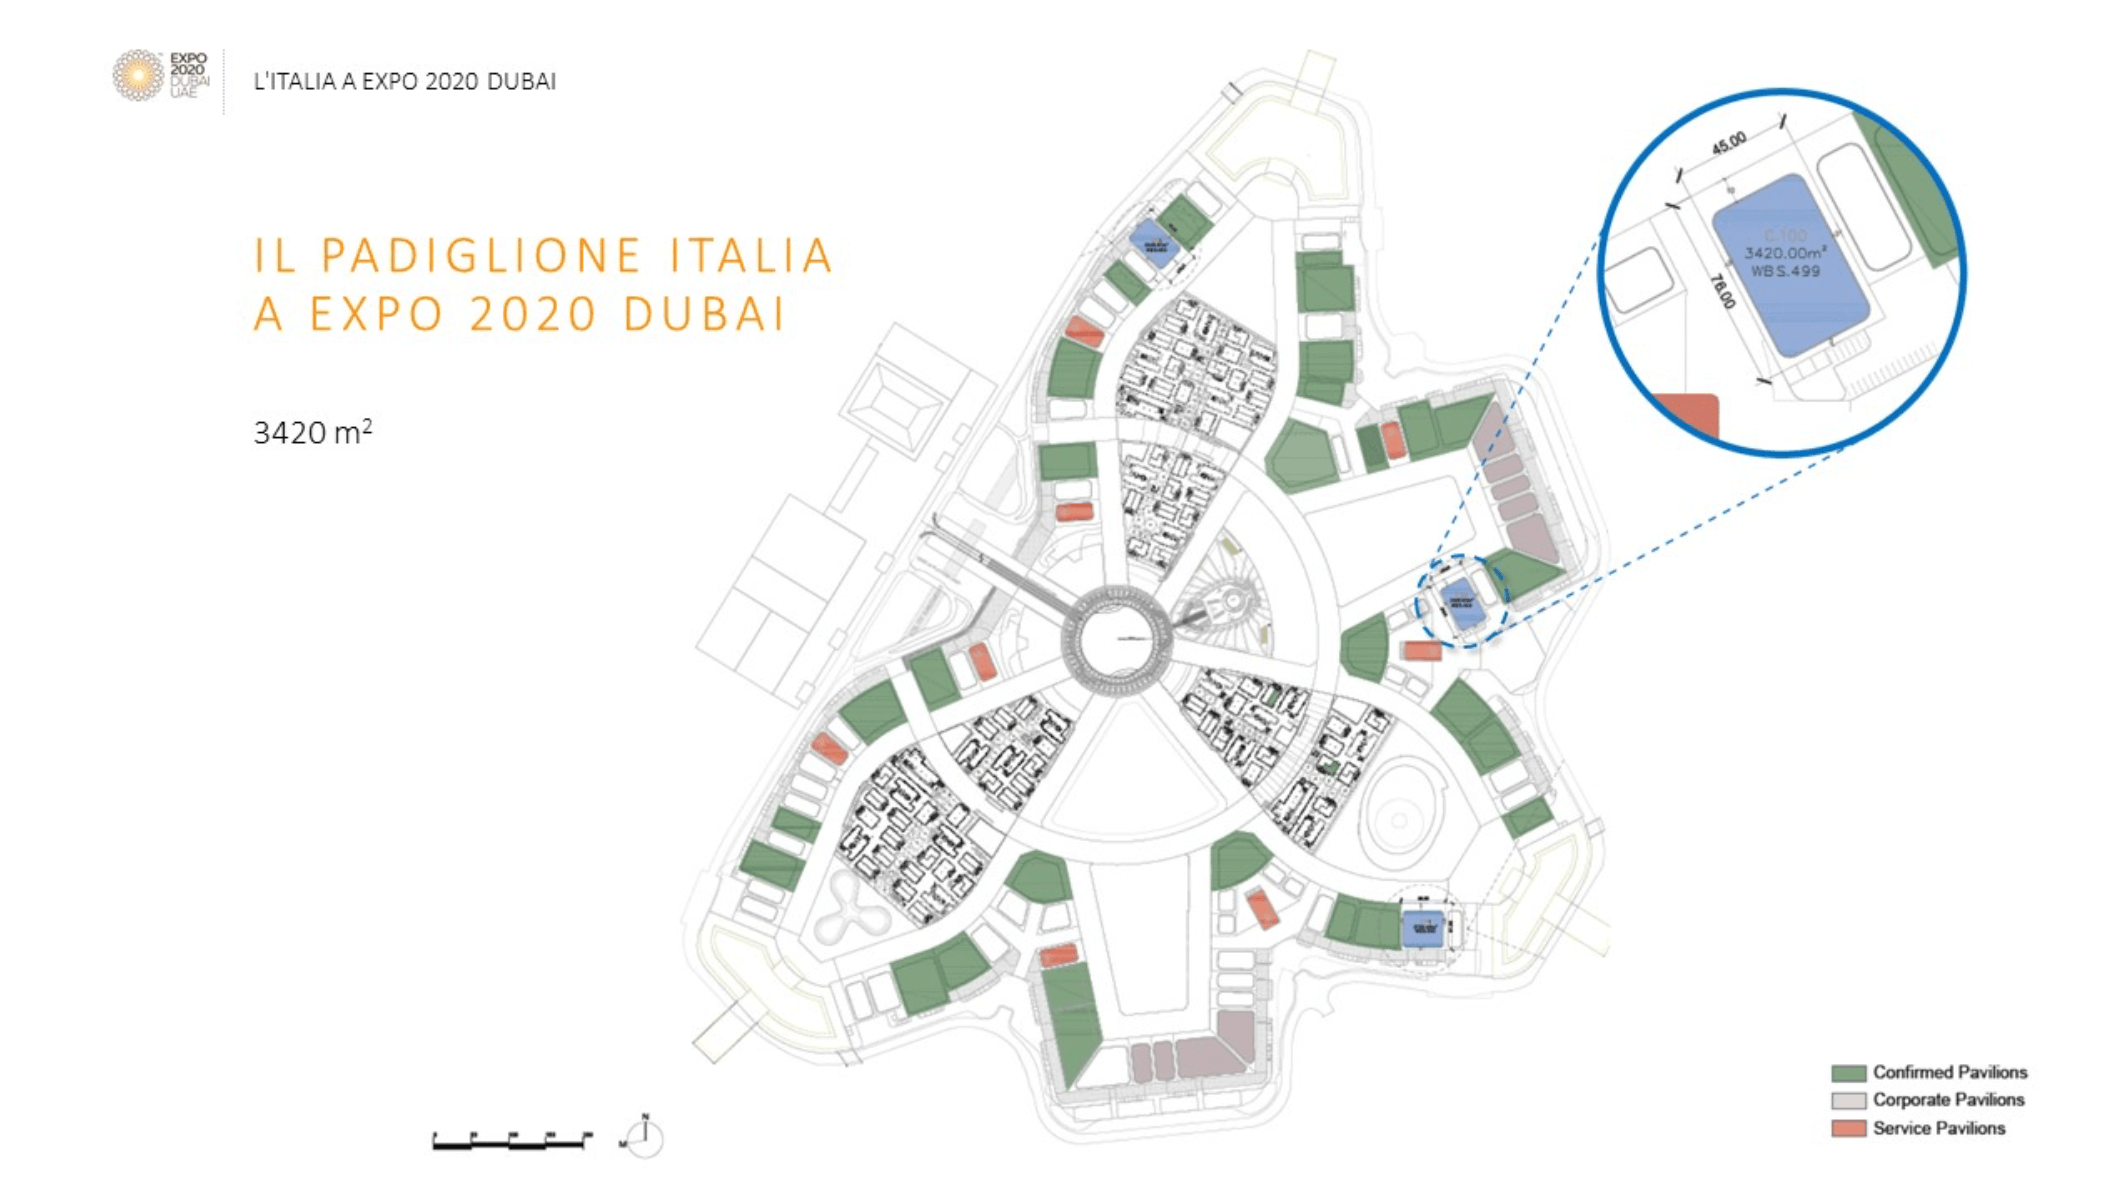 Calendario Eventi Expo 2020.Le Opportunita Ita For Expo 2020